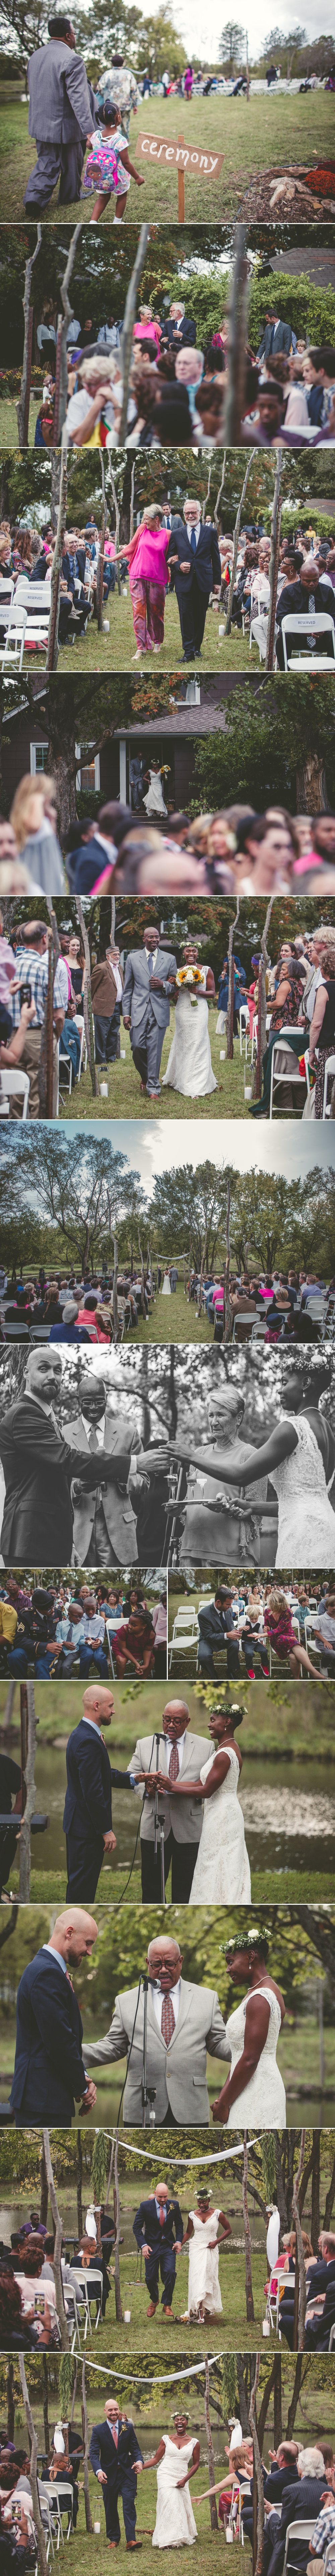 jason_domingues_photography_best_kansas_city_wedding_photographer_kc_weddings_farm_country_0002.JPG